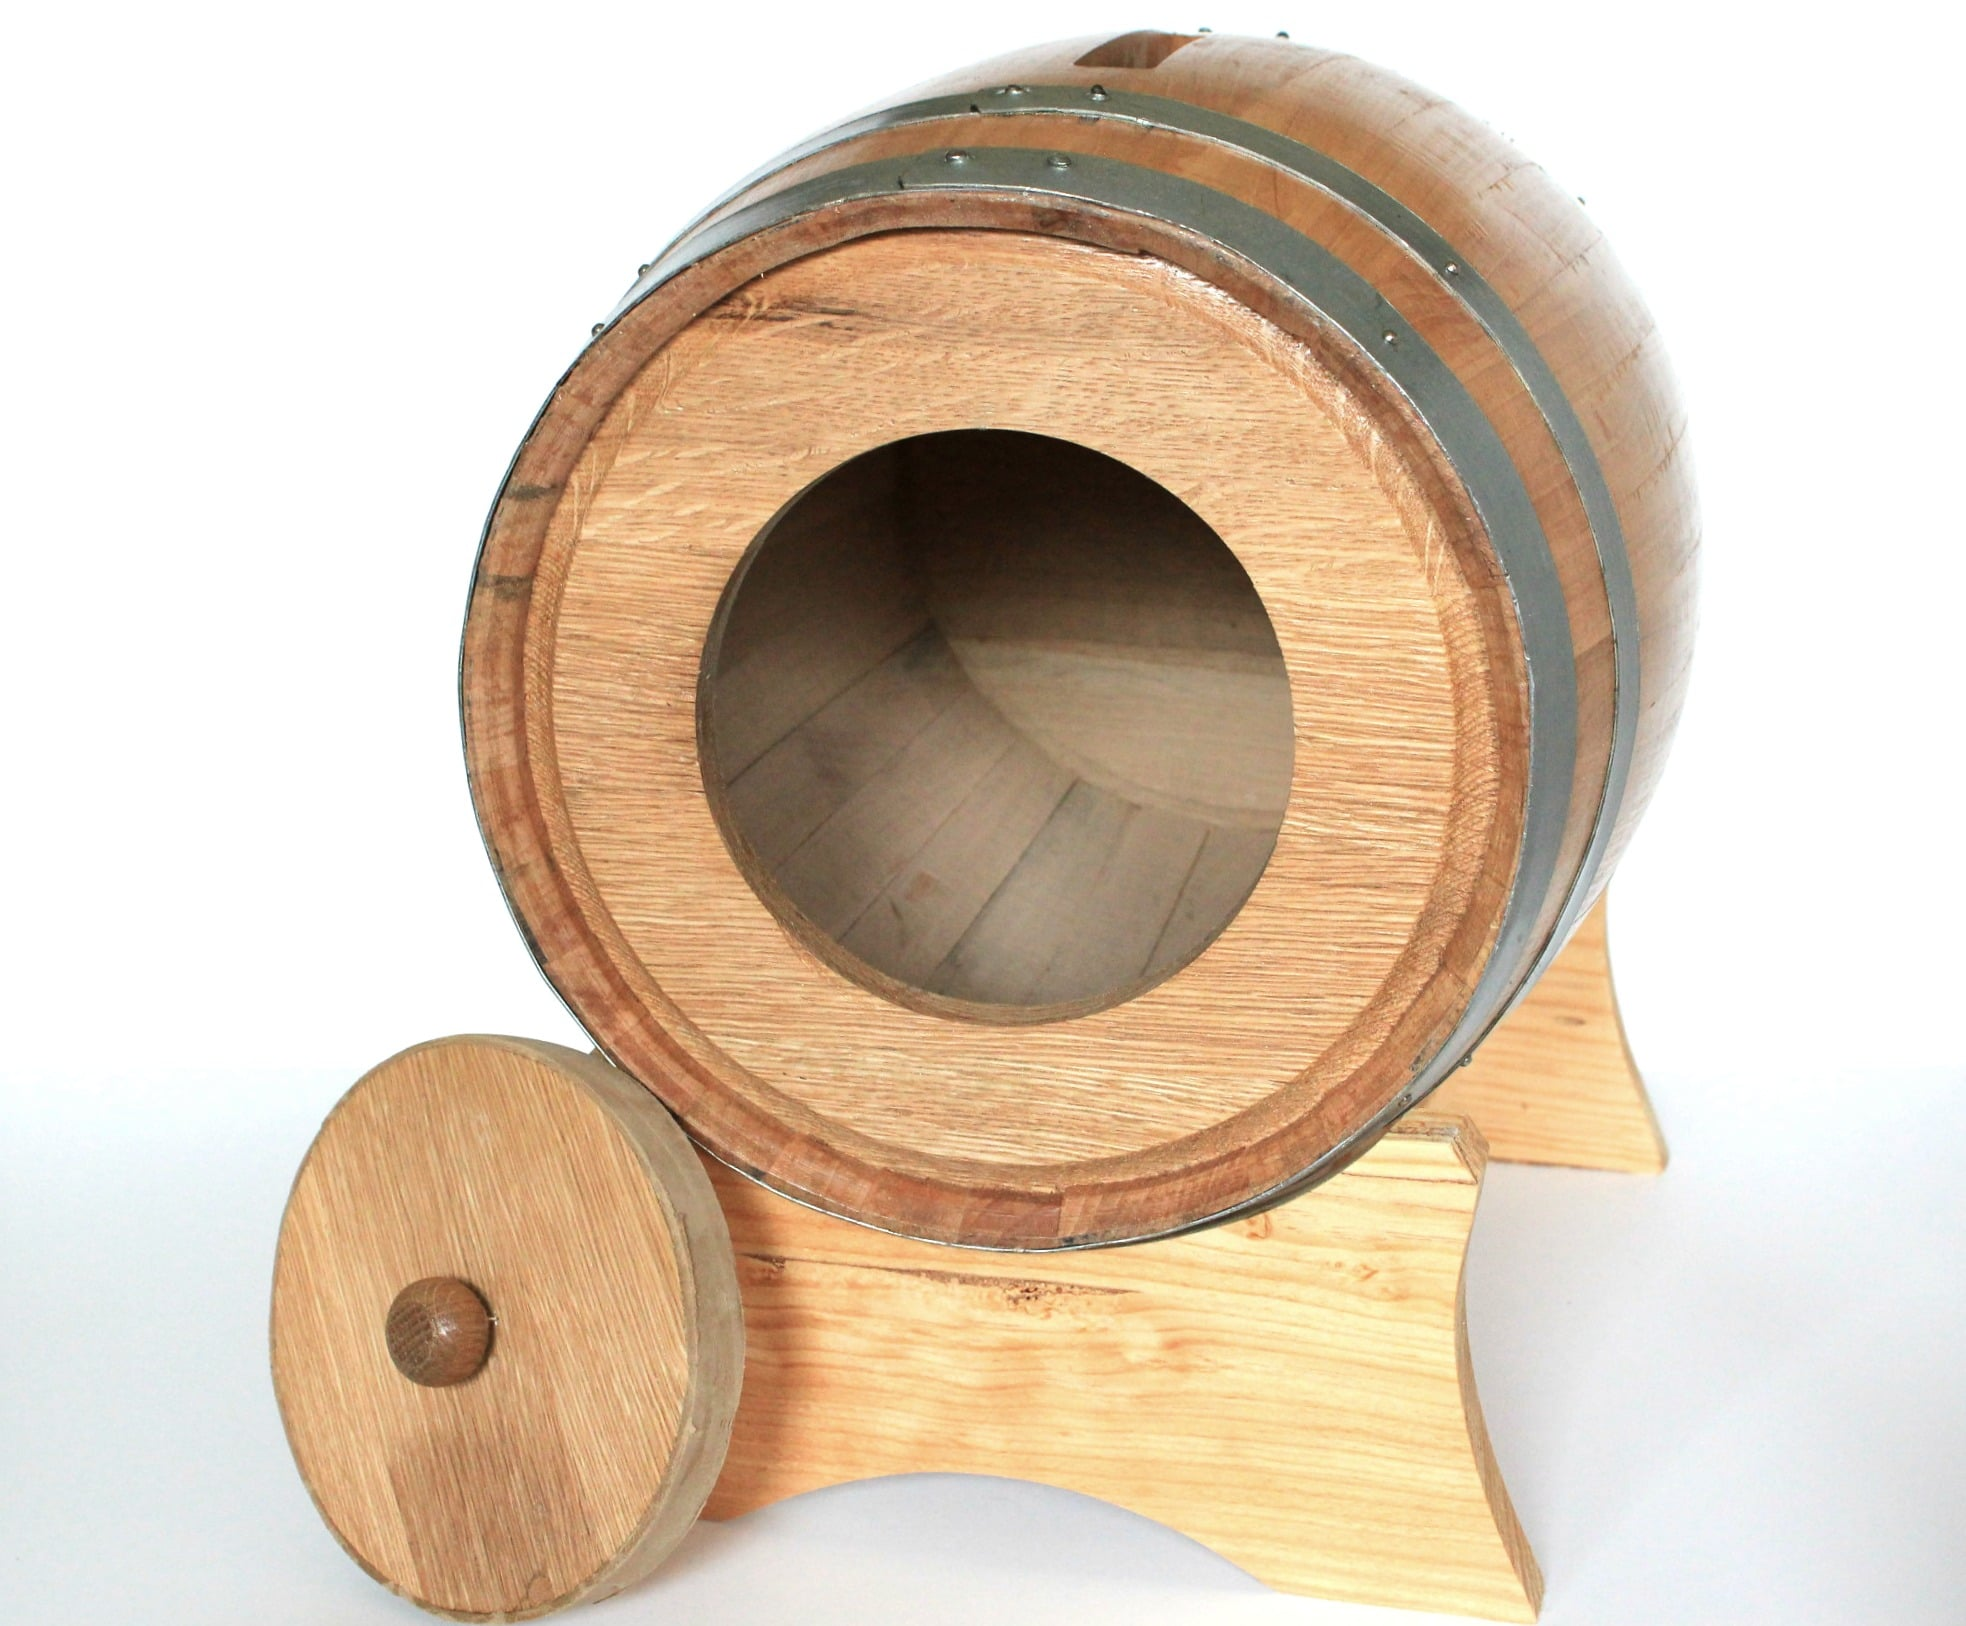 Trap door in back of card holder barrel for removing cards and envelopes